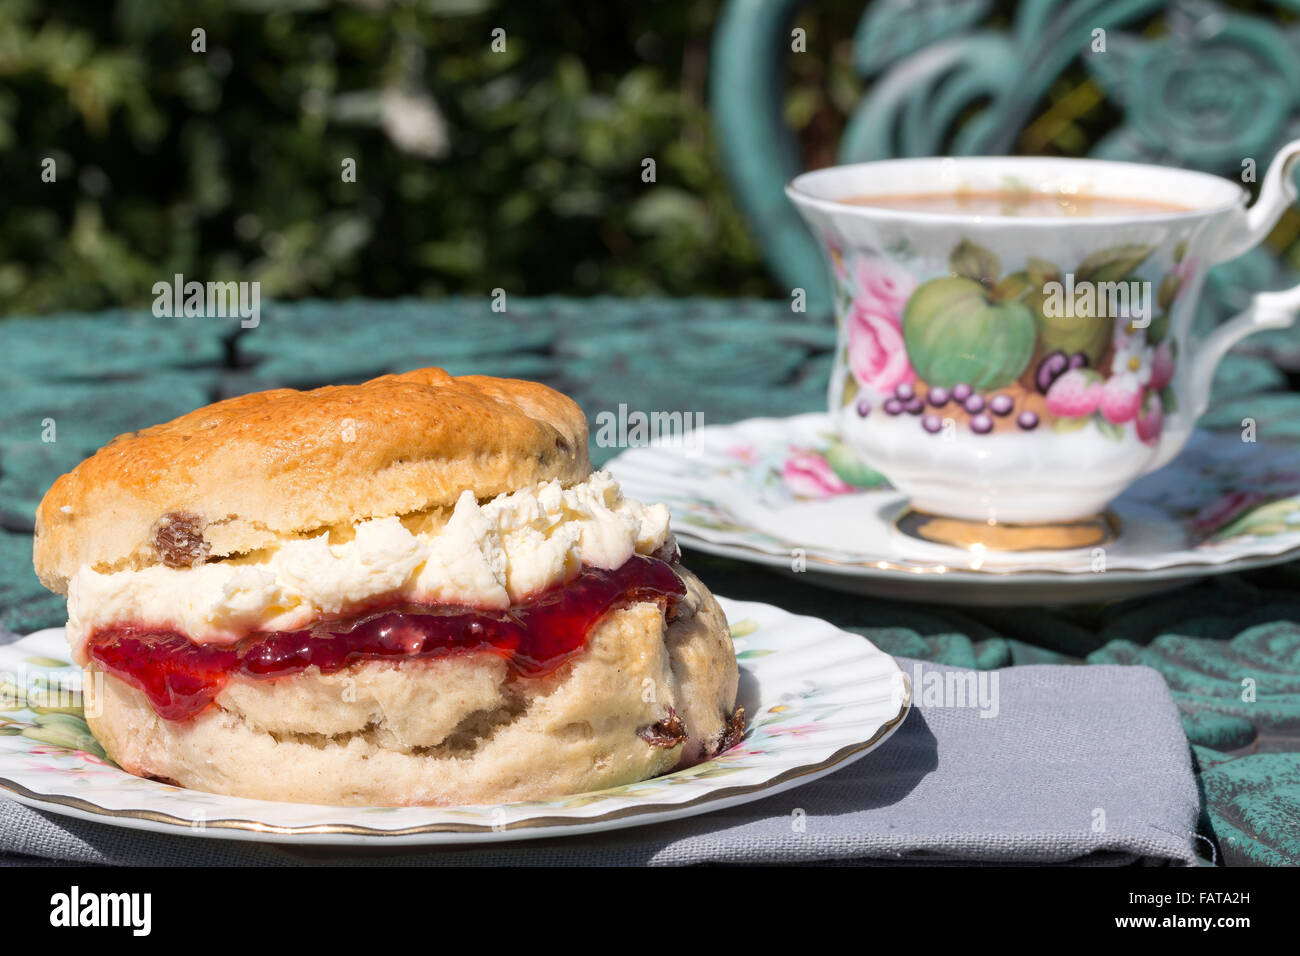 A fresh scone filled with whipped Cornish clotted cream and strawberry jam served on ornate antique bone china crockery - Stock Image